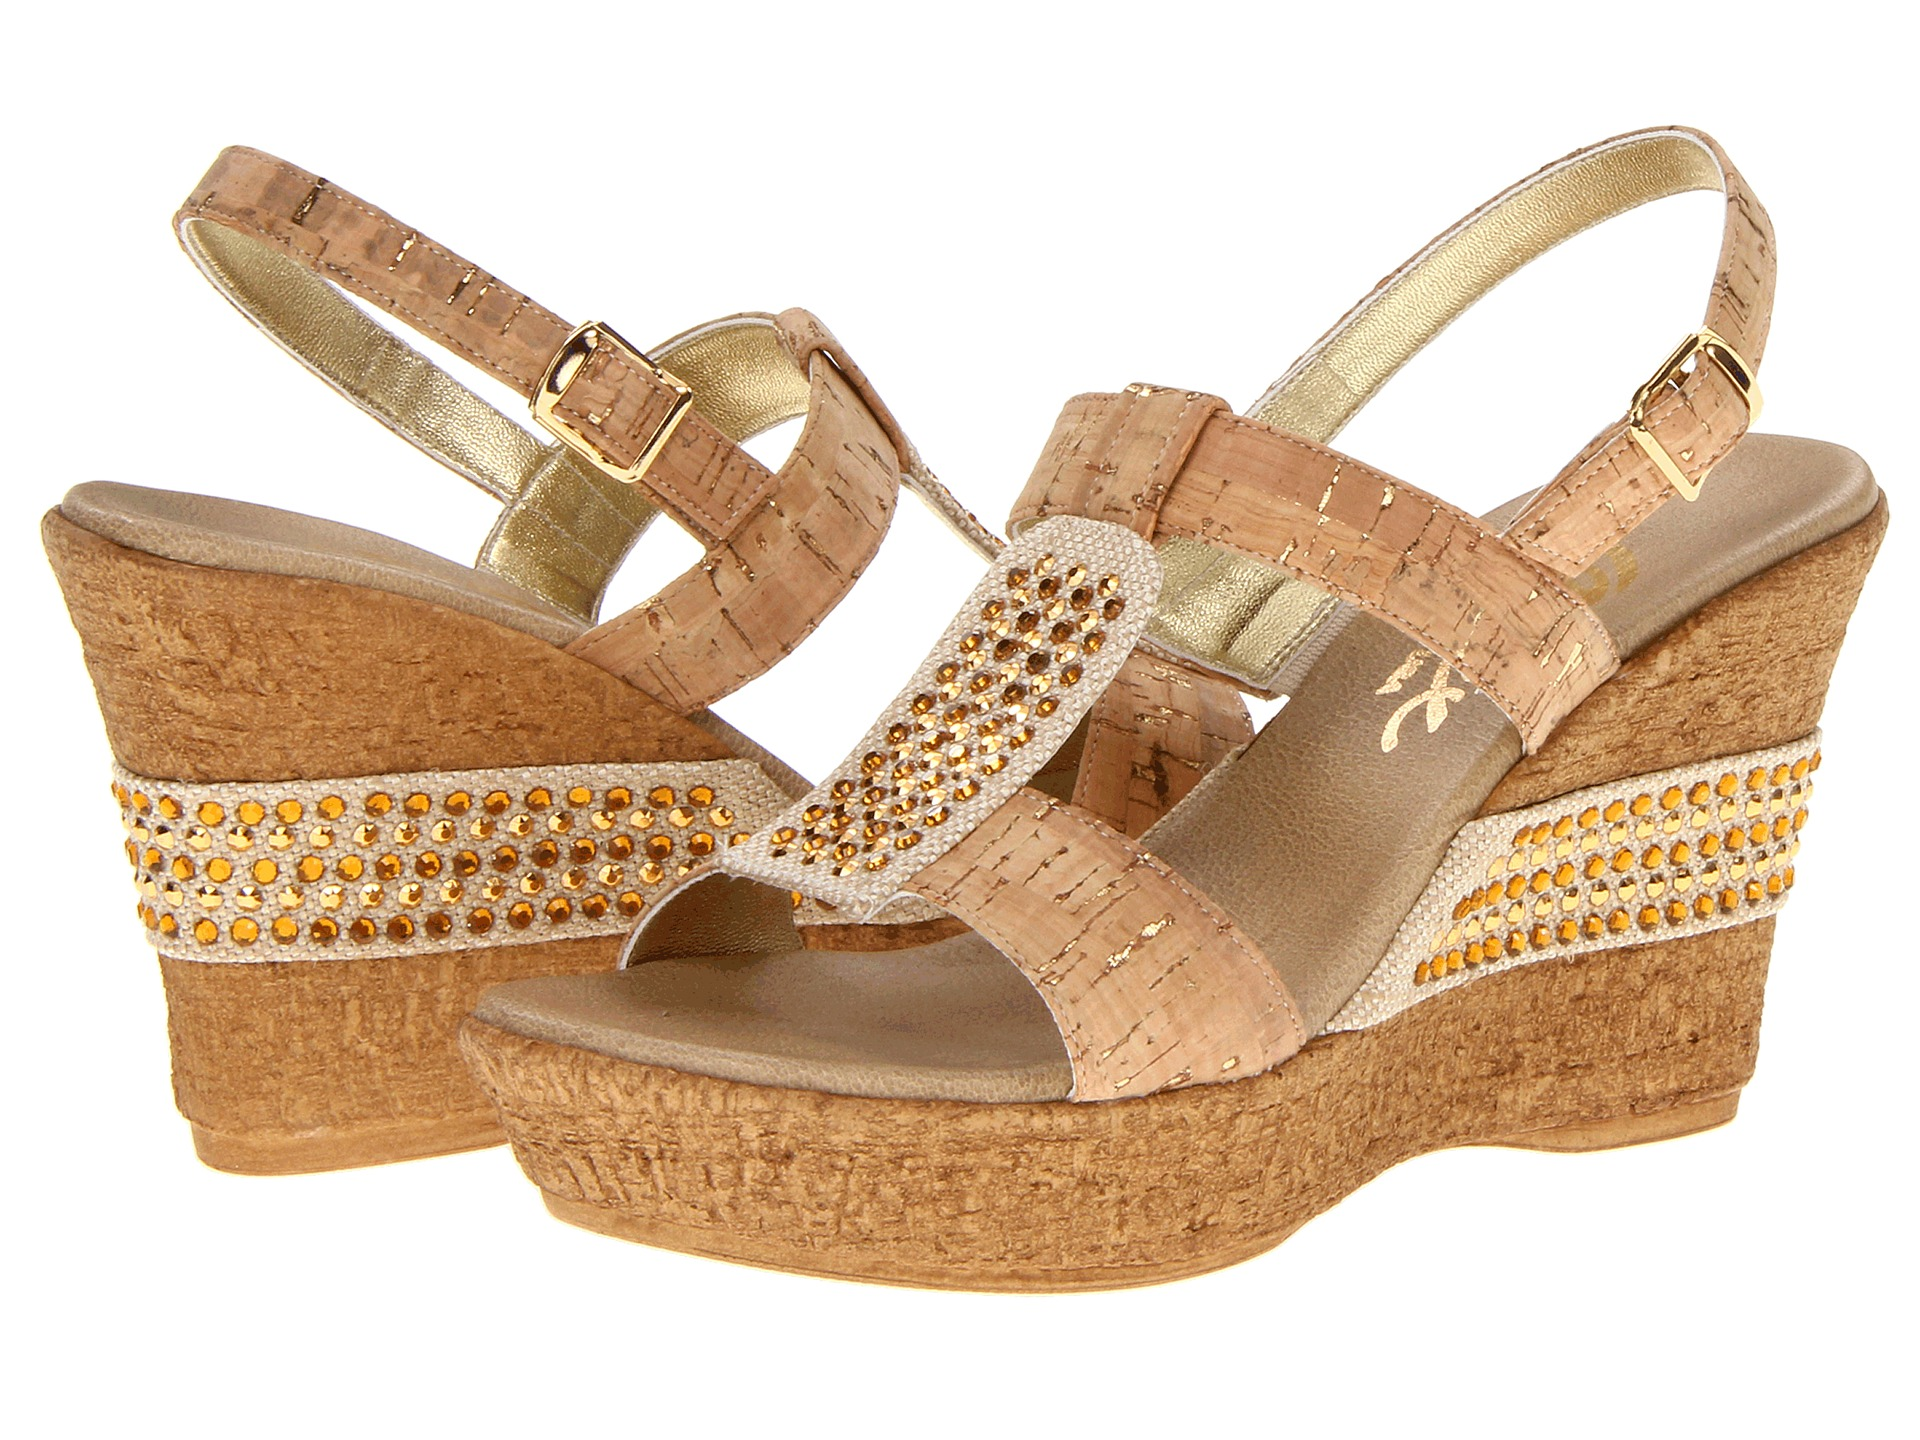 Onex Sandals Clearance